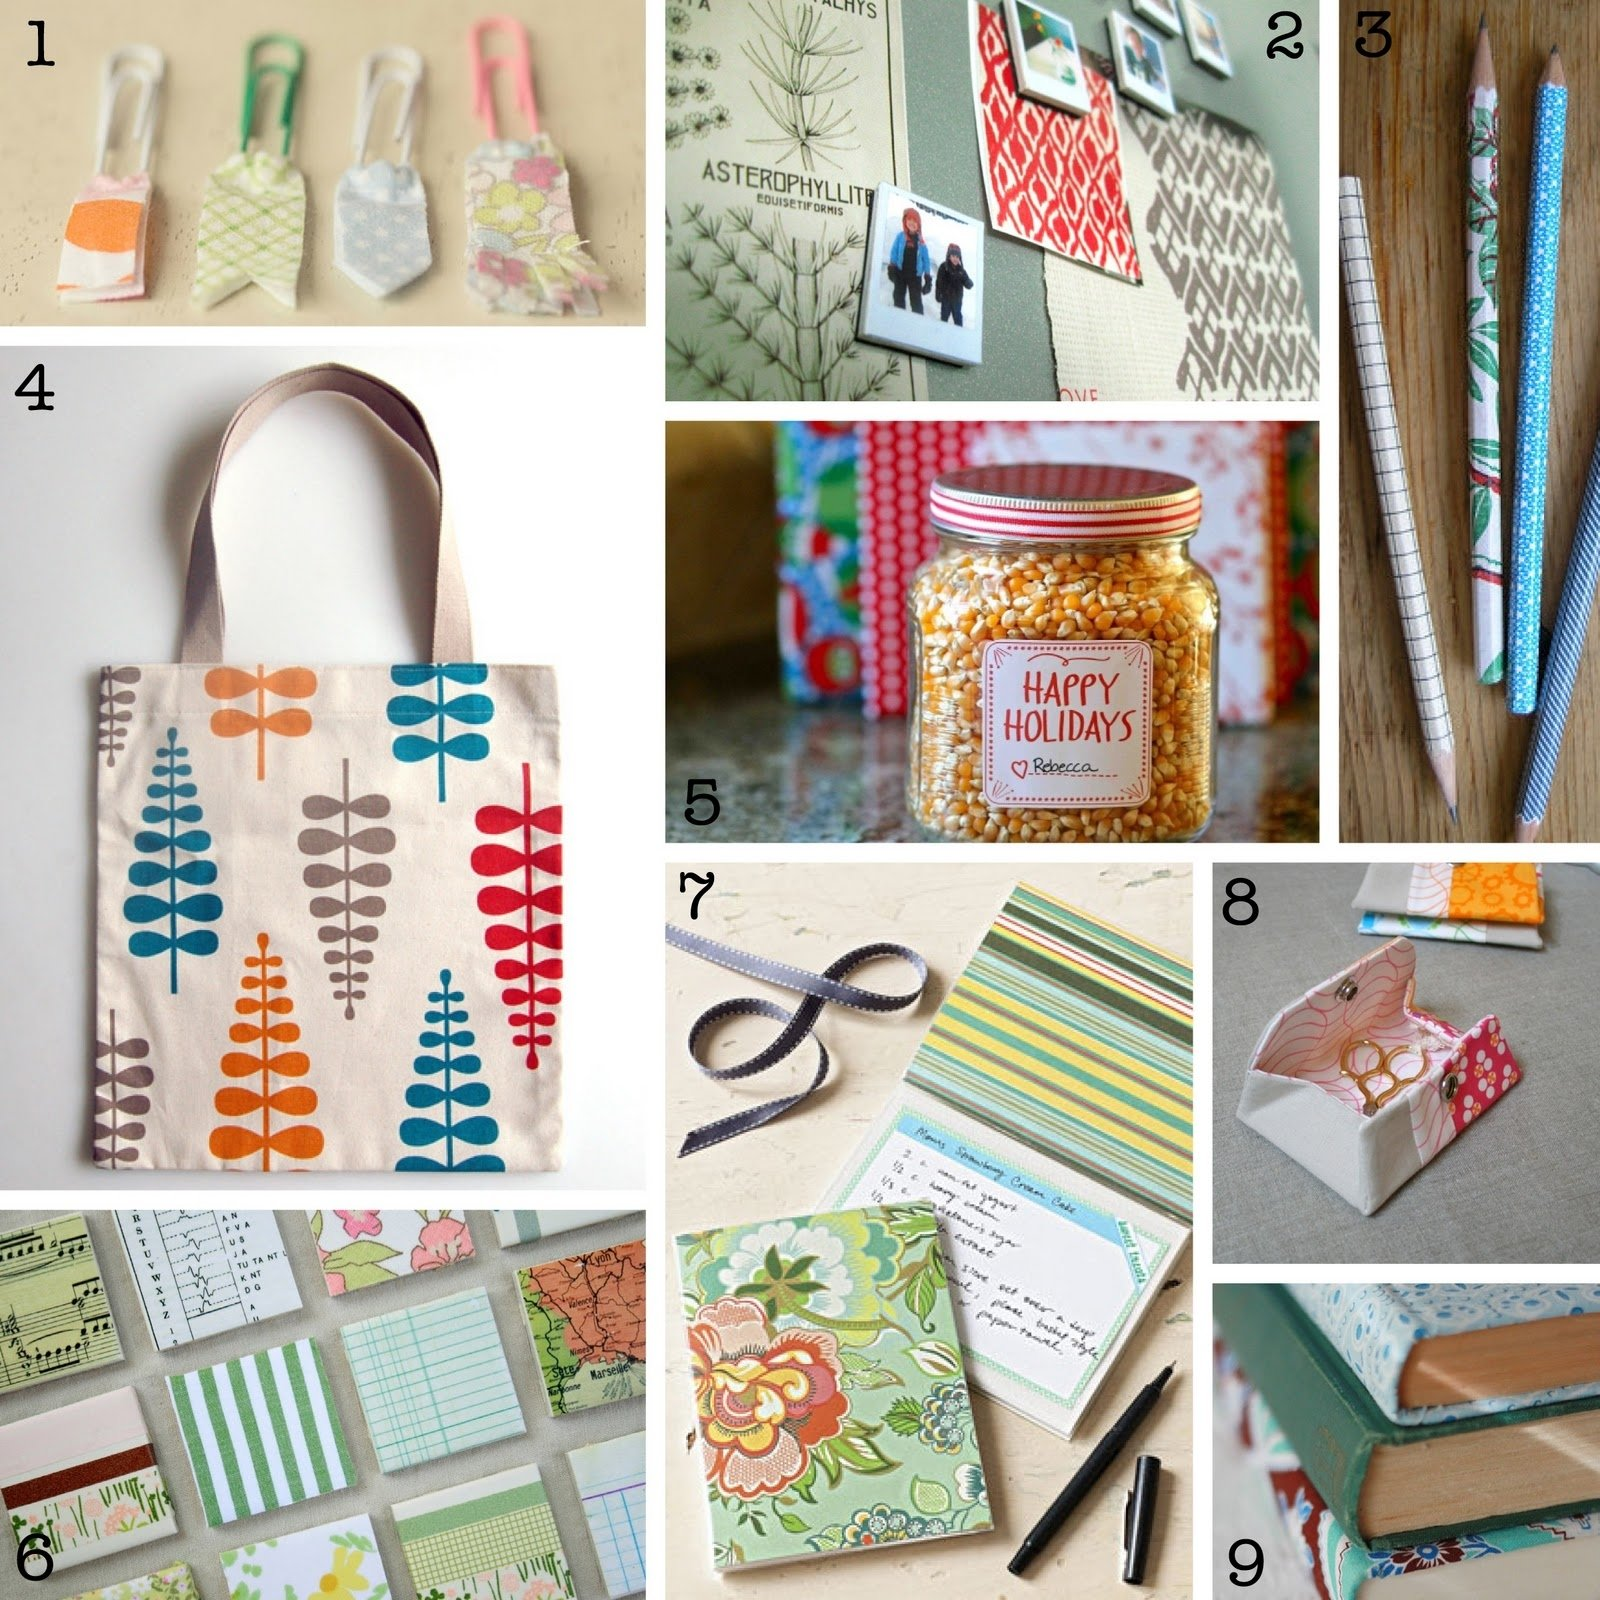 the creative place: last minute diy gift ideas